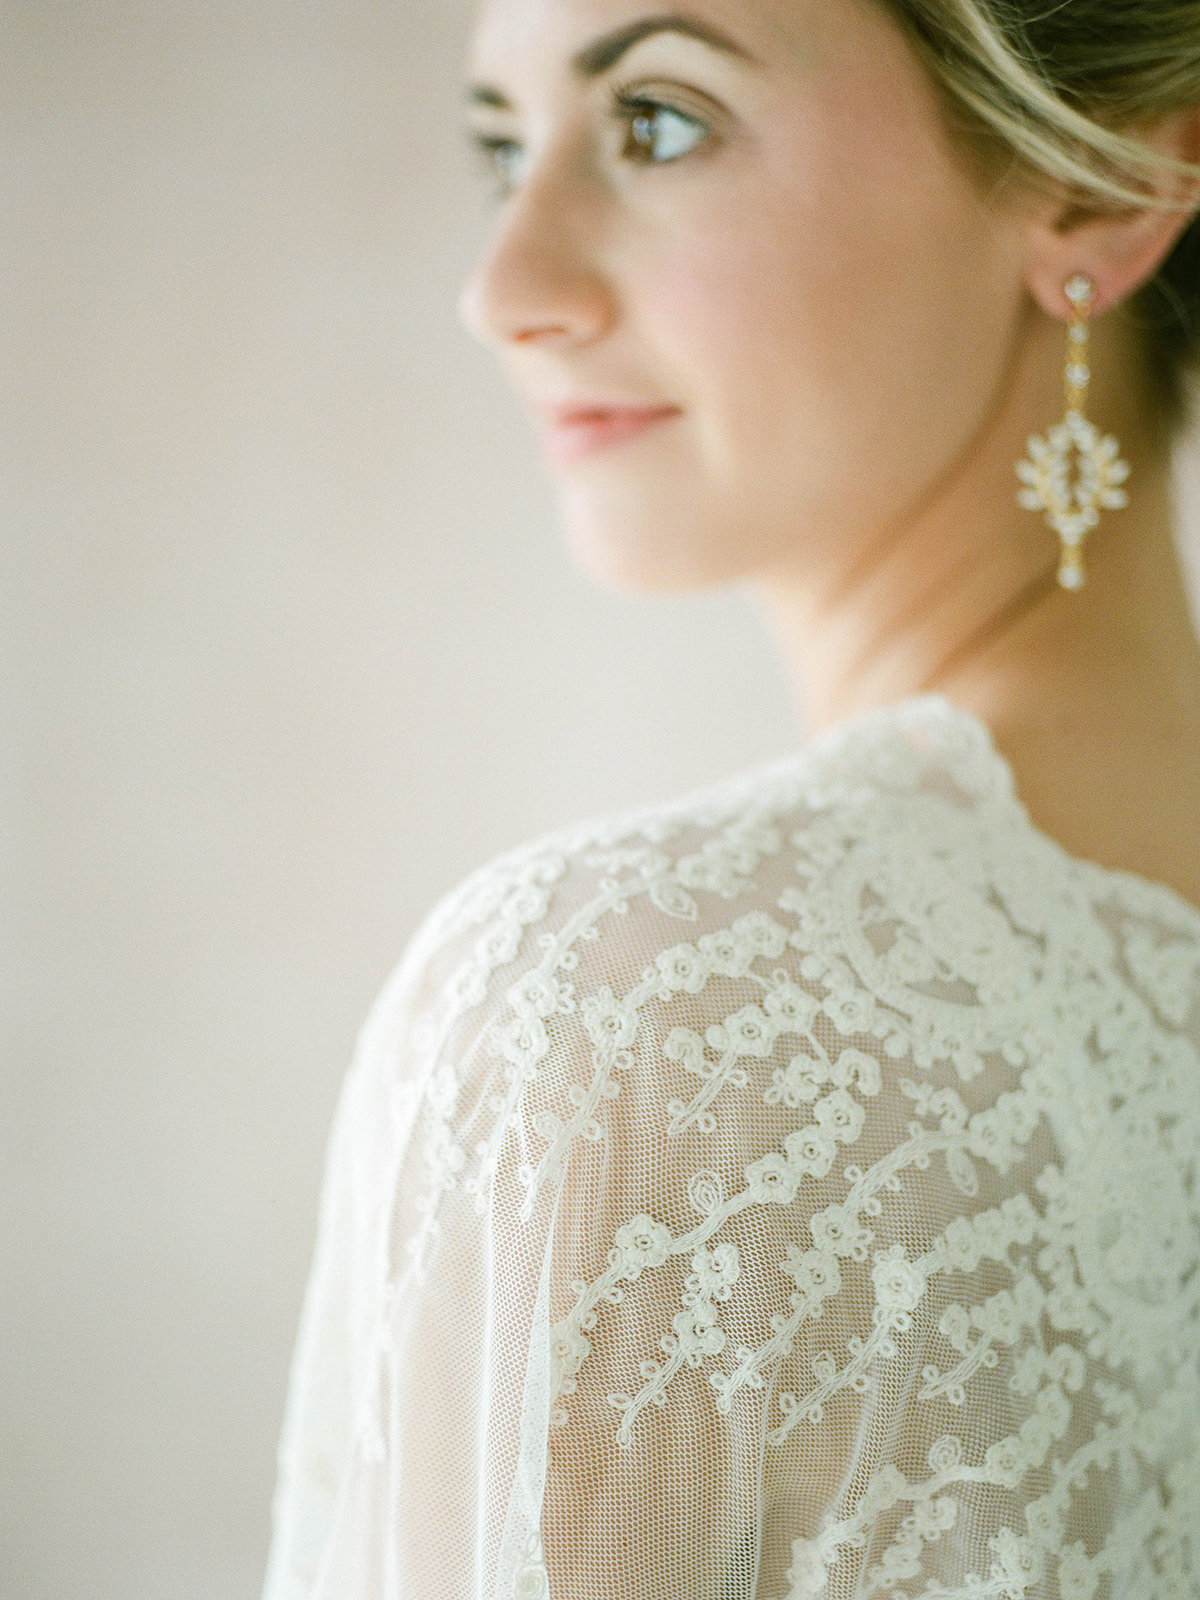 Fine Art Bridal Portraits - Sarah Sunstrom Photography - Film Wedding Photographer - 29